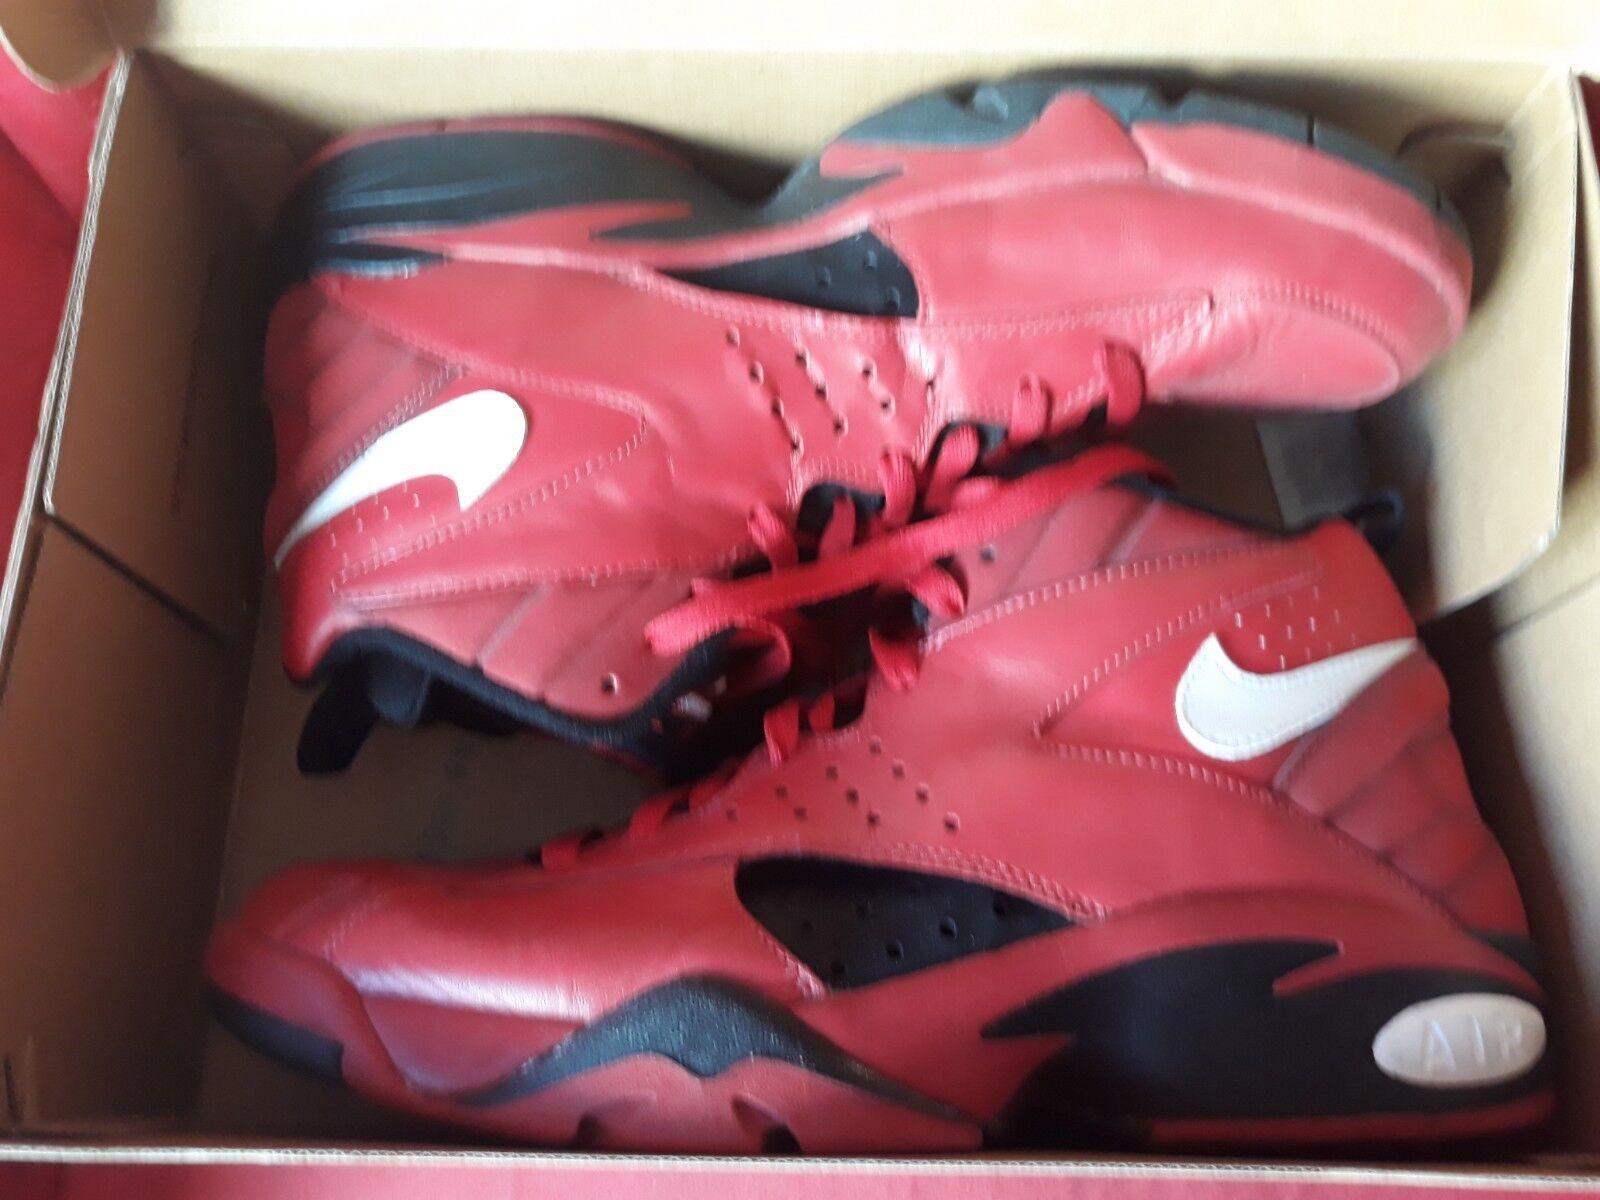 Nike Air Flight rot 12UK 13US 47.5 EURO BNWOB